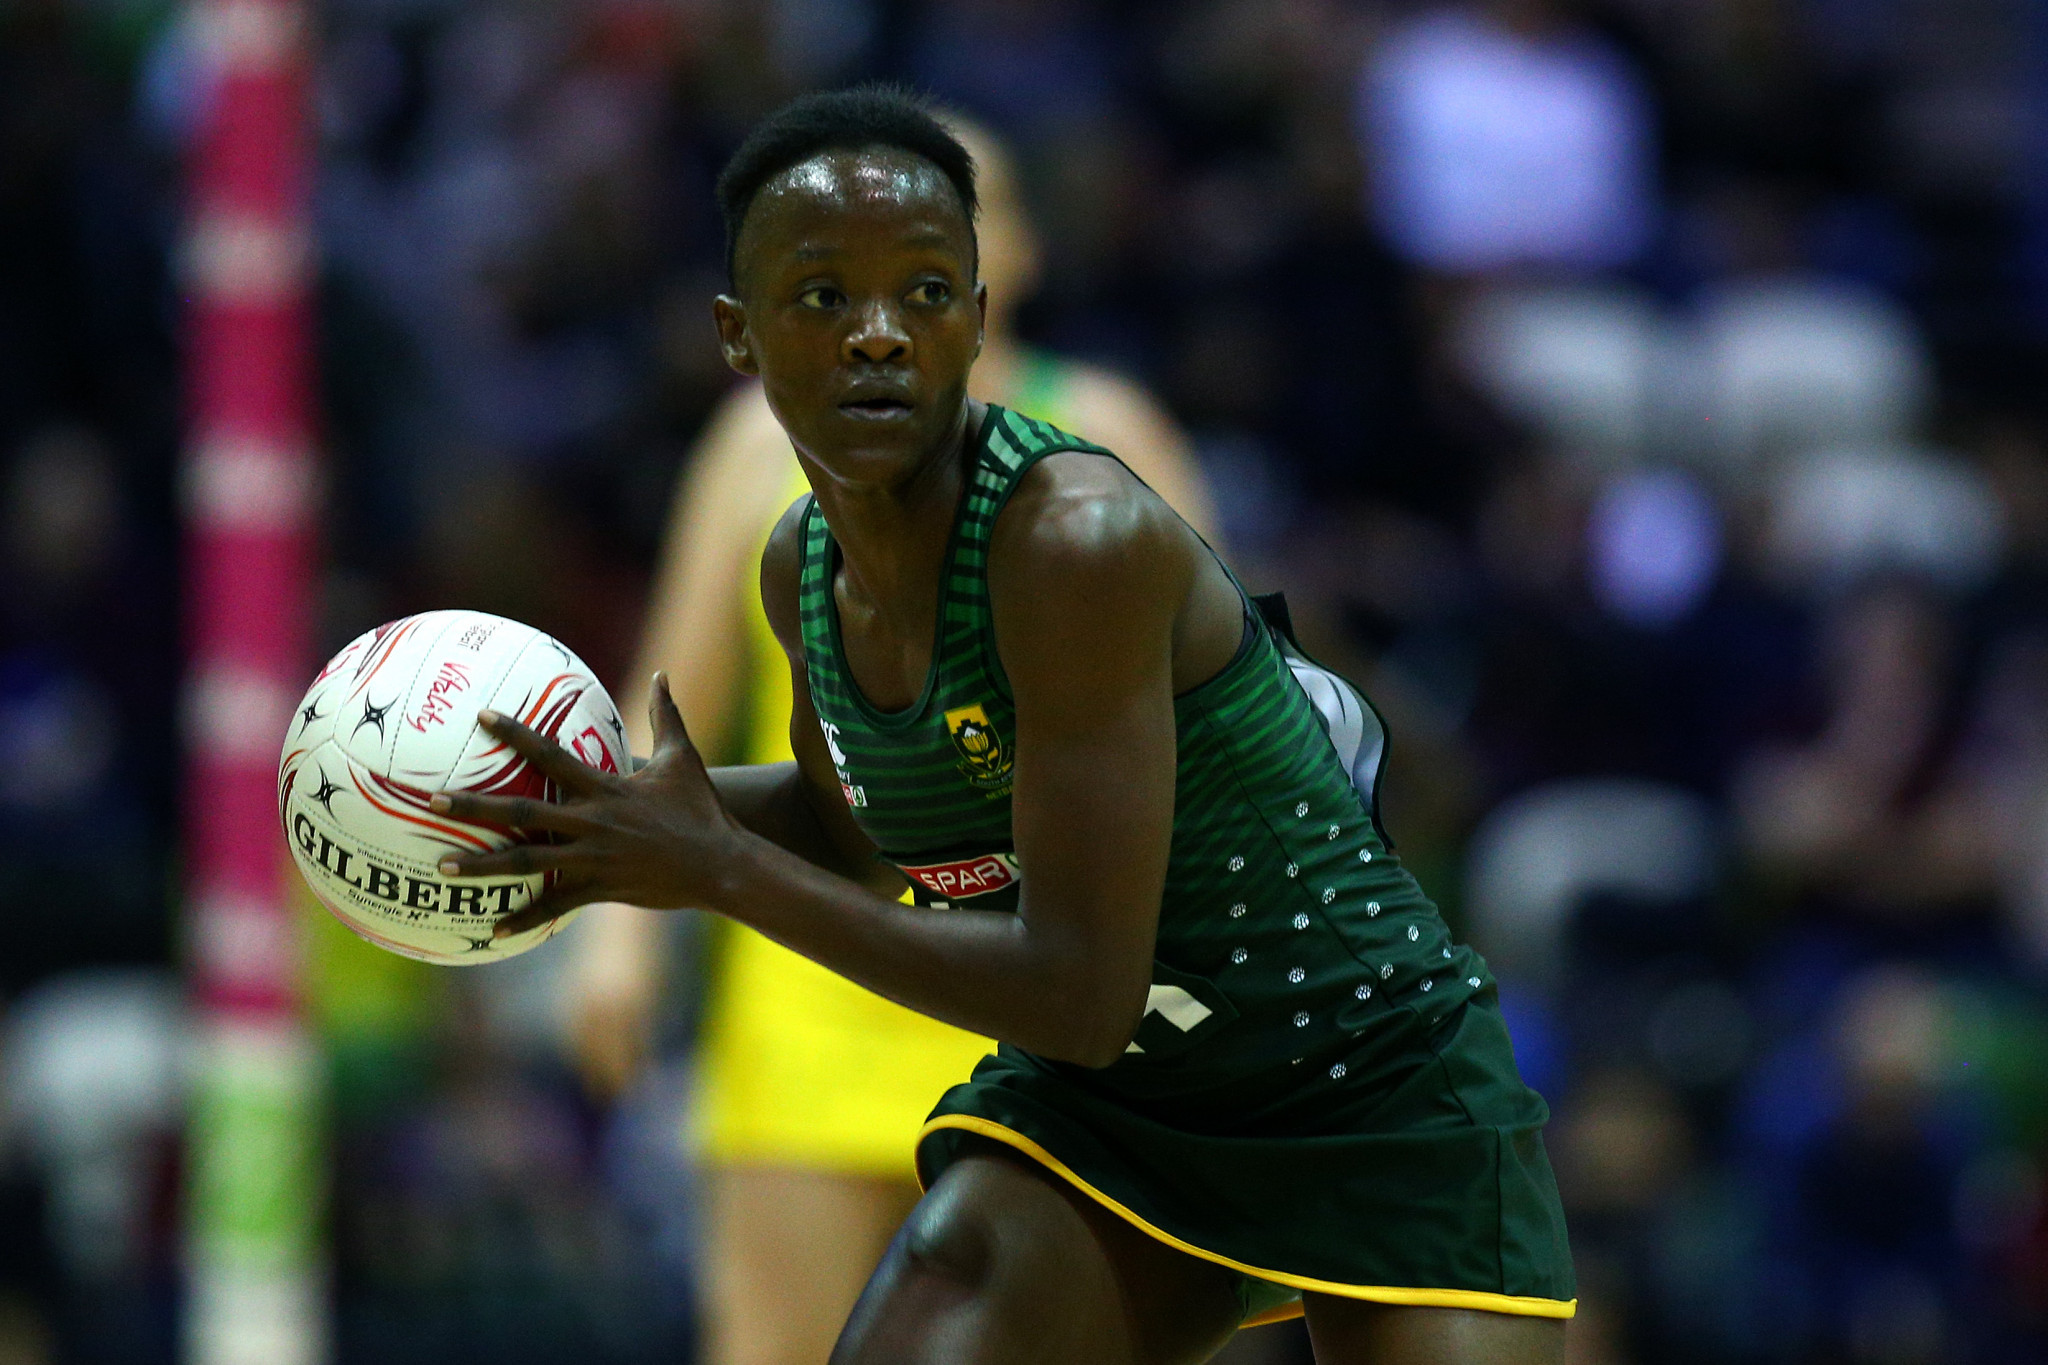 Bongiwe Msomi said the team's performances lifted, when South Africa played at home in the 2017 Quad Series with Australia, England and New Zealand ©Getty Images